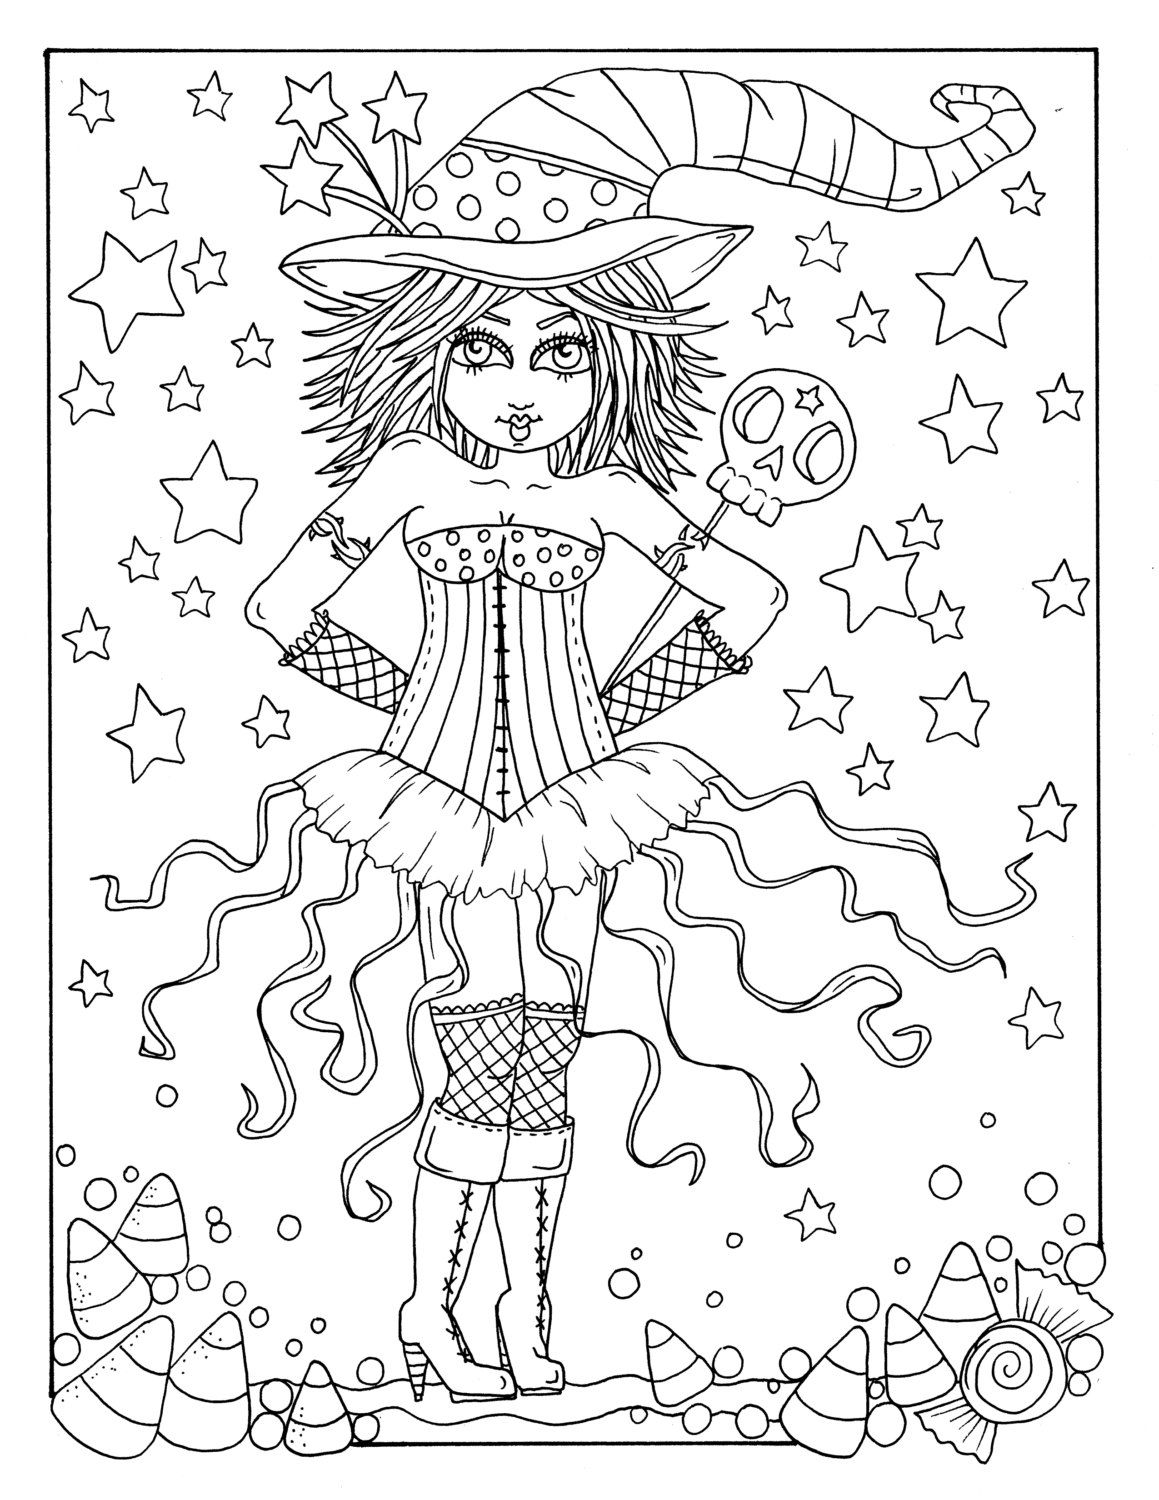 Deborah Muller Art Chubbymermaid Witch Coloring Pages